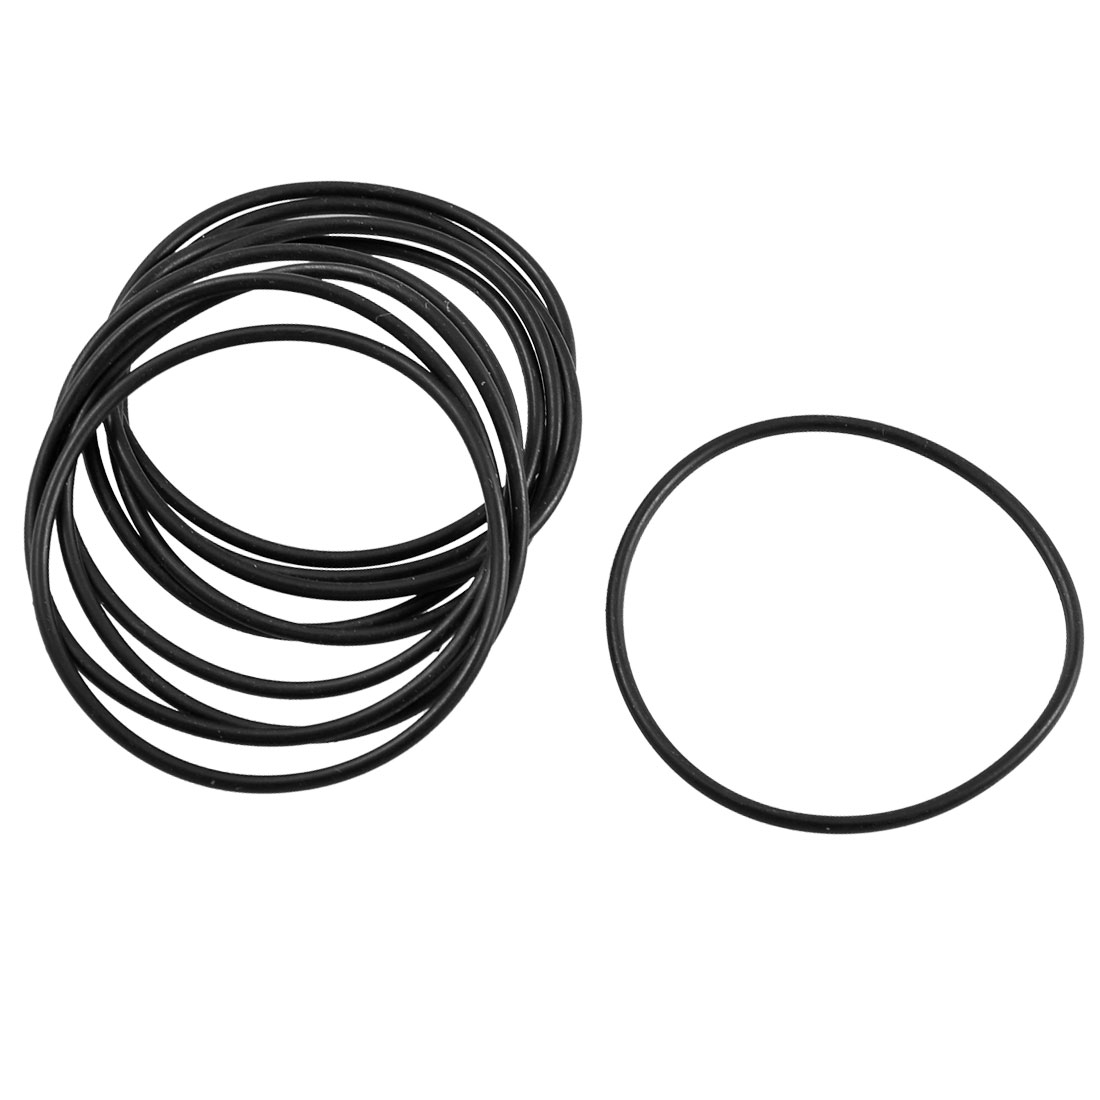 10 Pcs 43.7mm x 1.8mm Black Rubber Oil Seal O Ring Gasket Washer